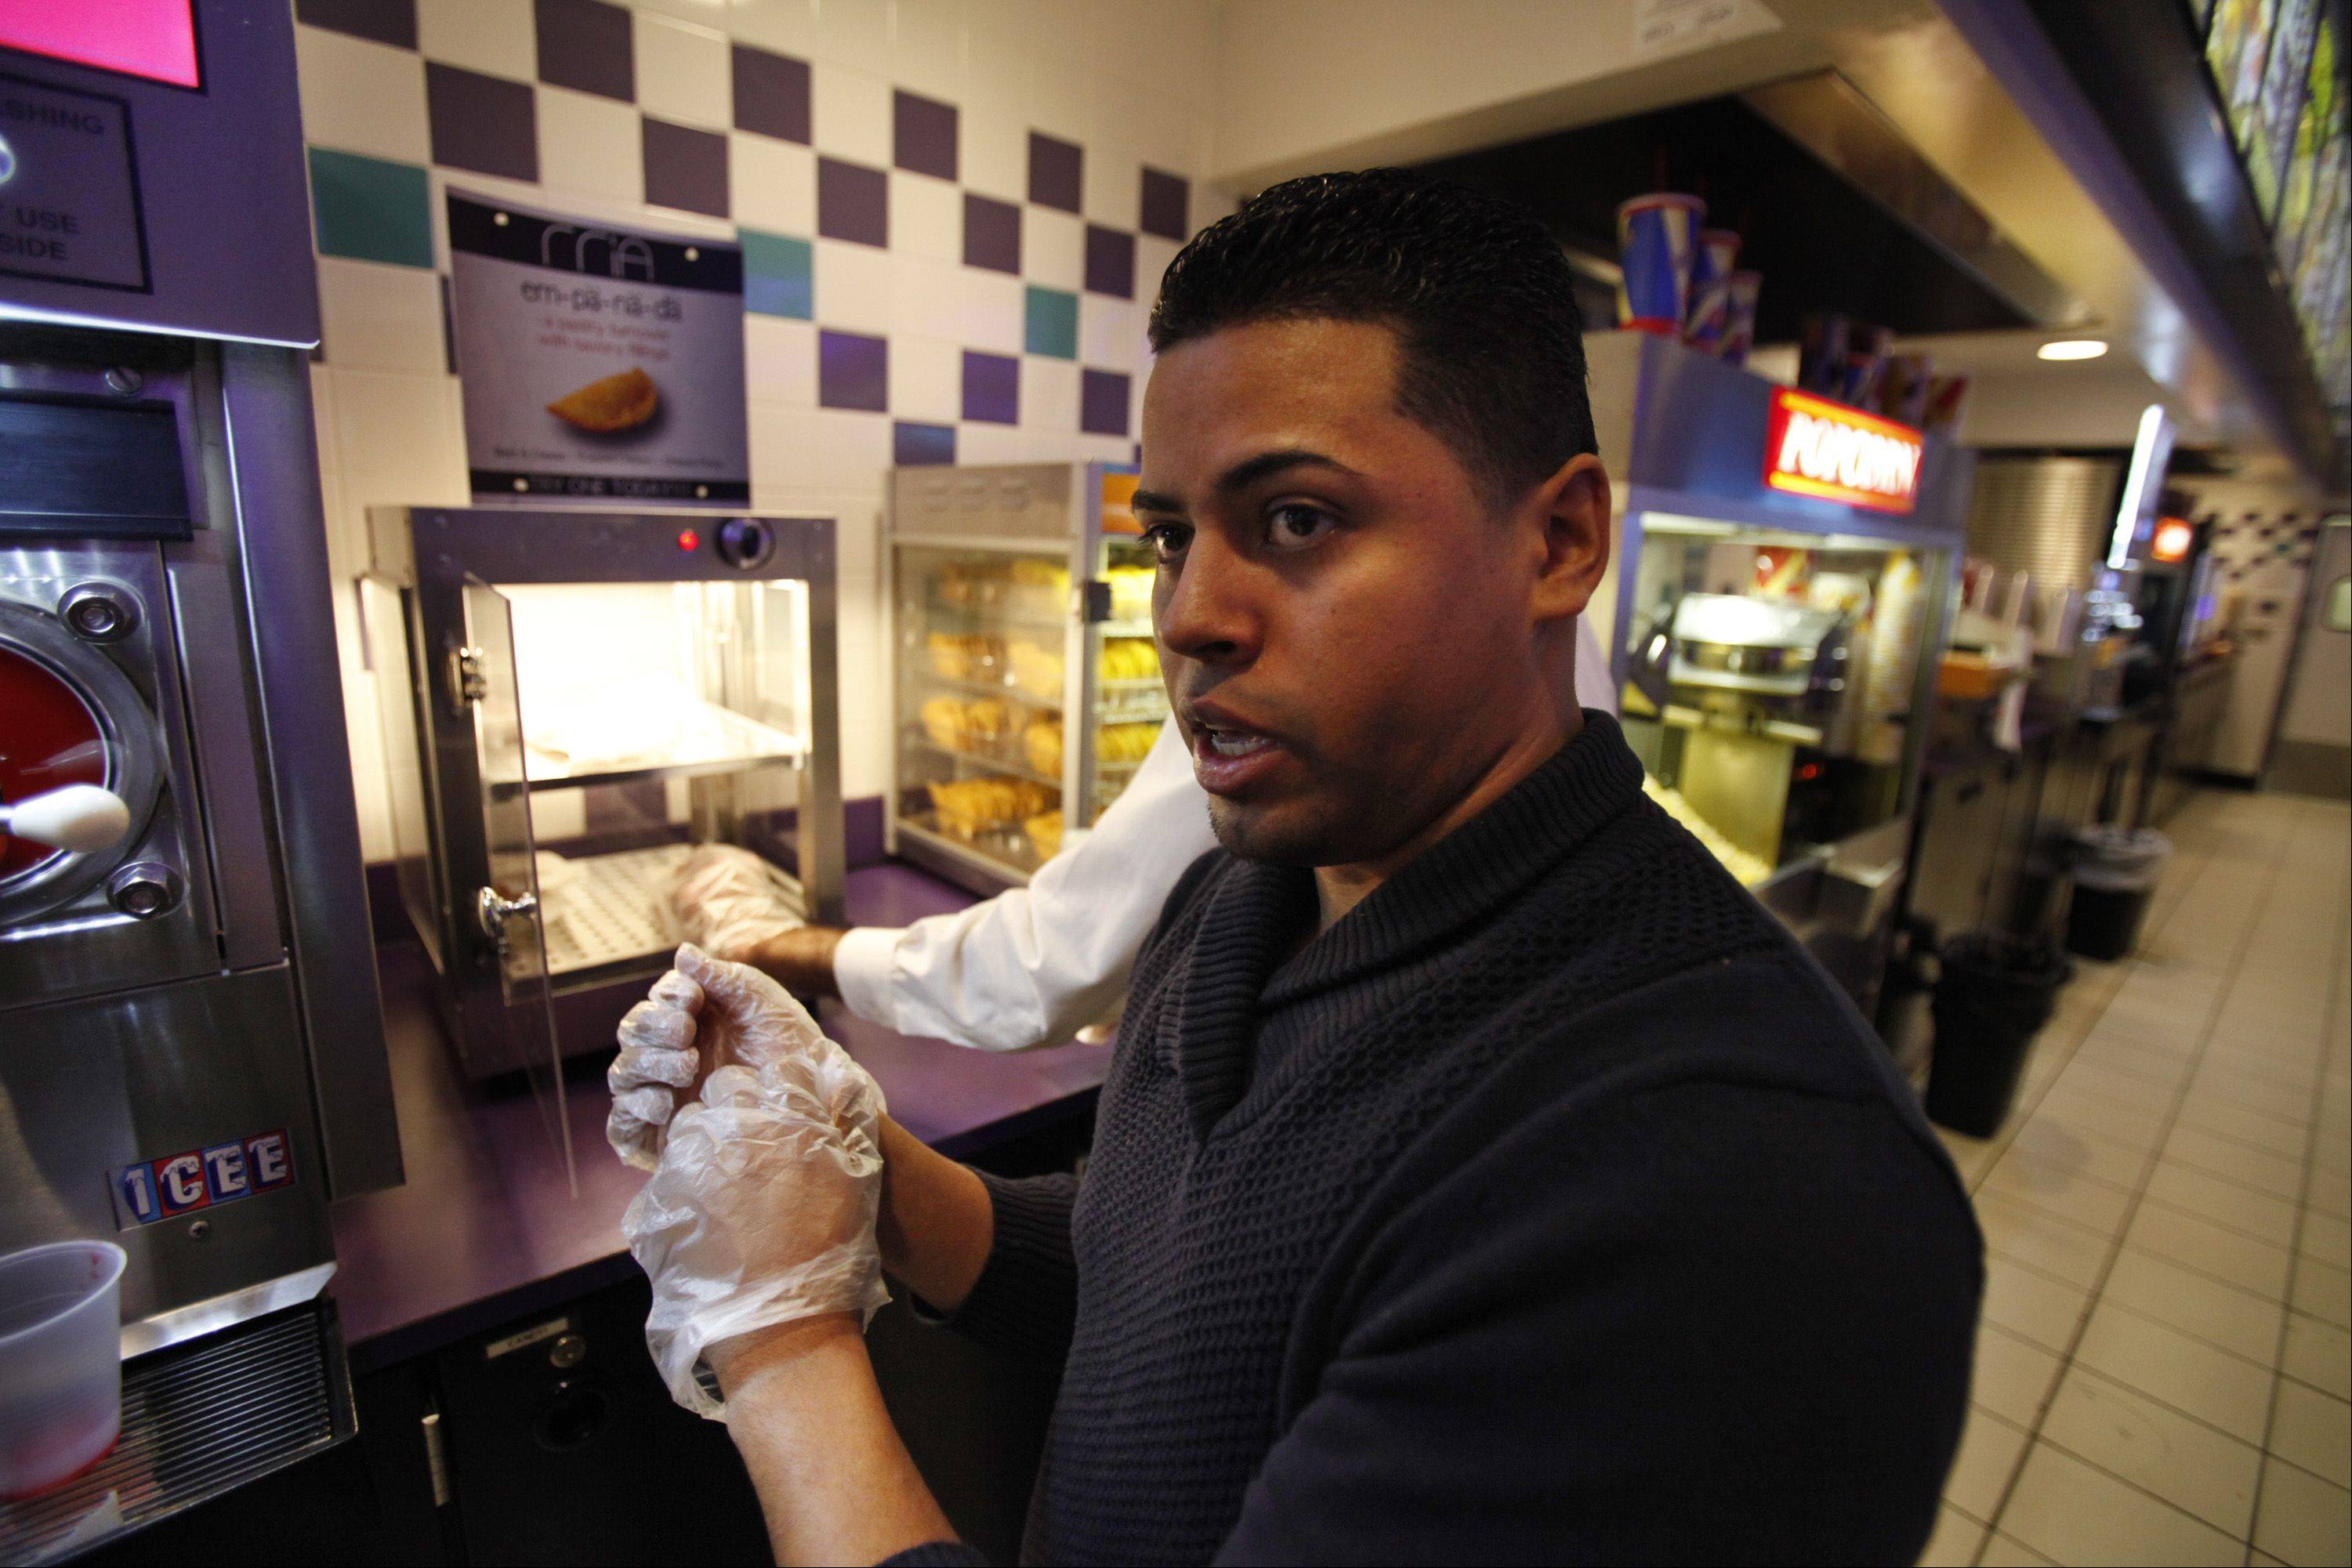 Kevin Echevarria, co-owner of Rria Foods in Elgin, talks with Randy Pollock, the general manager at Classic Cinemas' Charlestowne 18 in St. Charles, which began selling Rria Foods' empanadas last week. Echevarria believes empanadas will become mainstream like burritos.